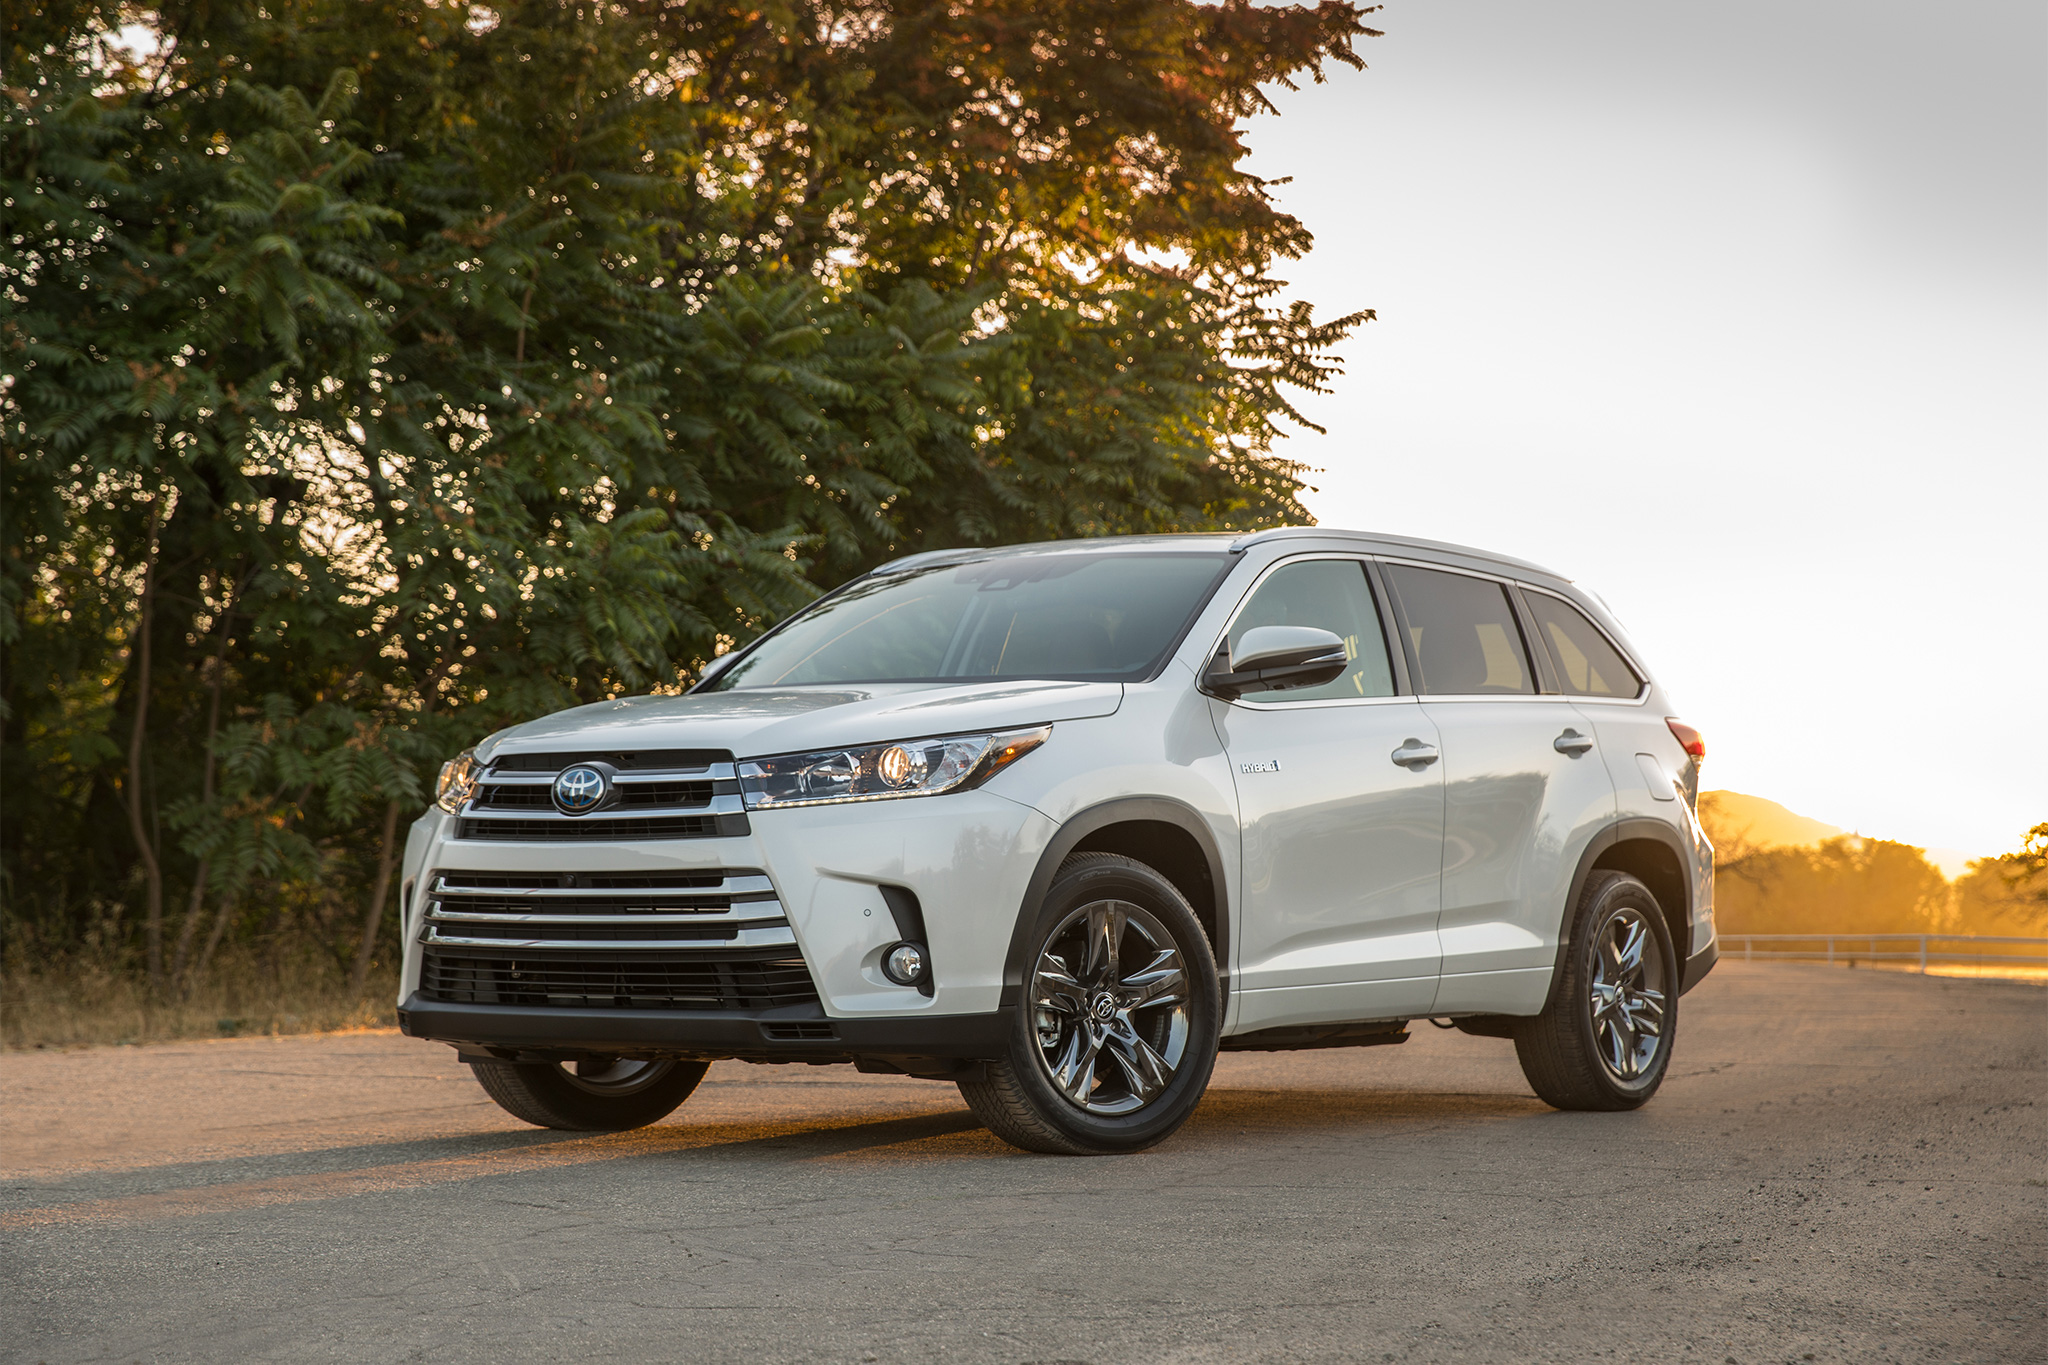 2017 toyota highlander hybrid limited v6 awd review by steve purdy. Black Bedroom Furniture Sets. Home Design Ideas